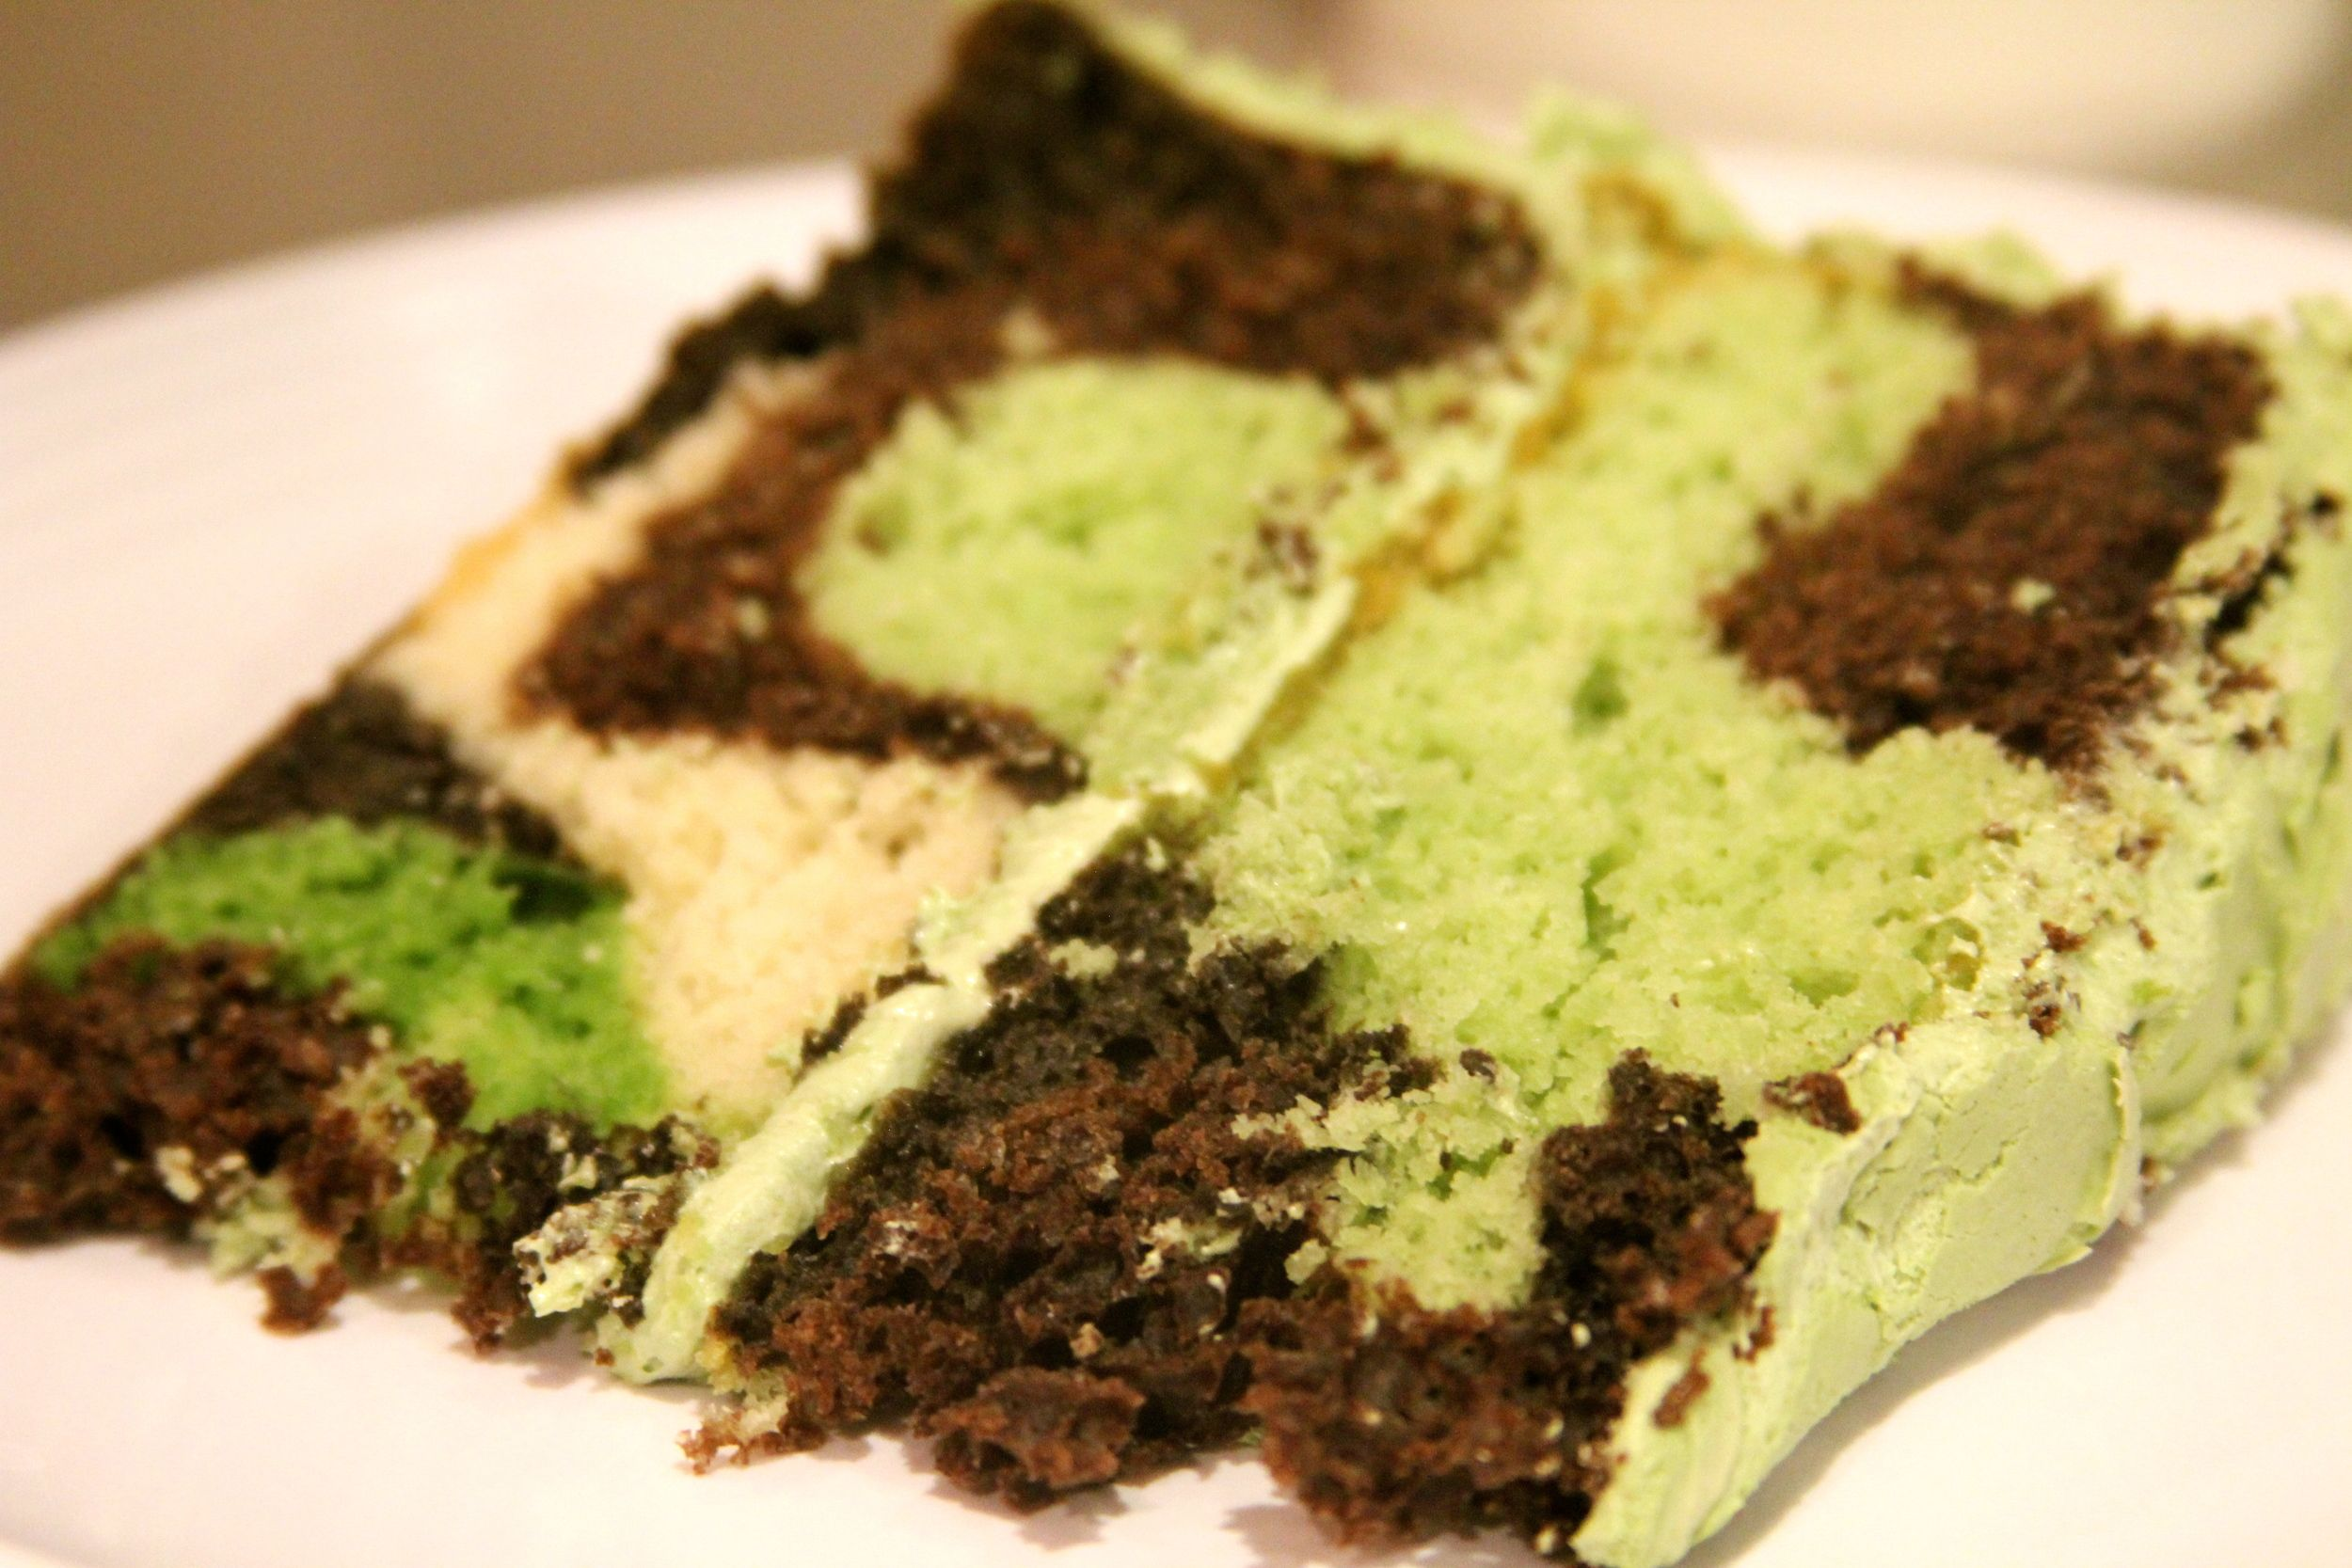 making a camouflage birthday cake {tutorial} Army